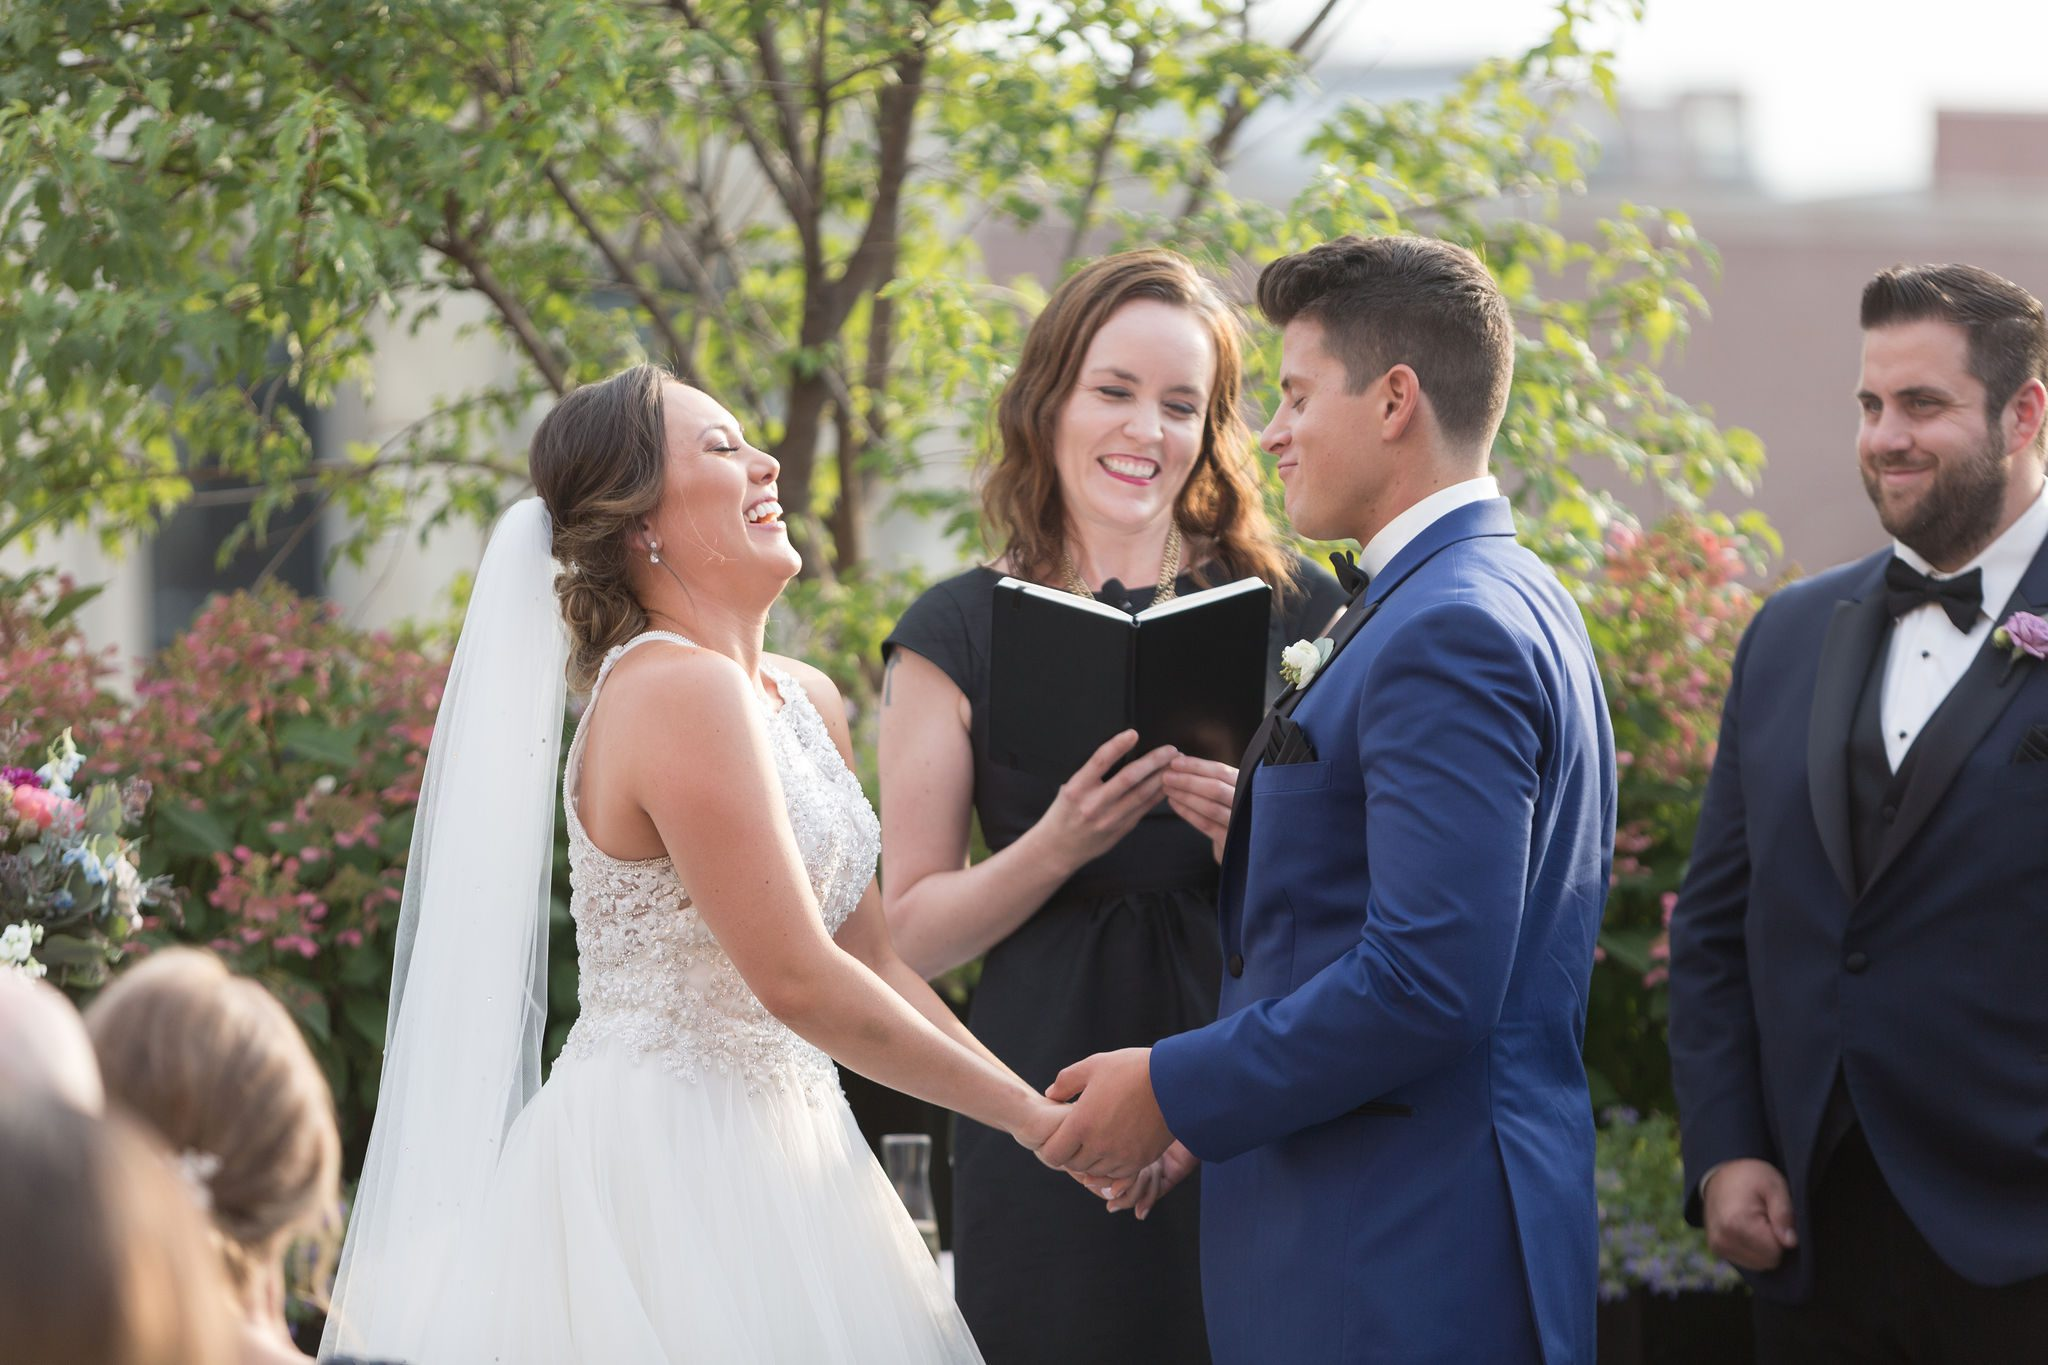 Nicole Zenner from Zen Events, wedding celebrant, The Brave Files Podcast.